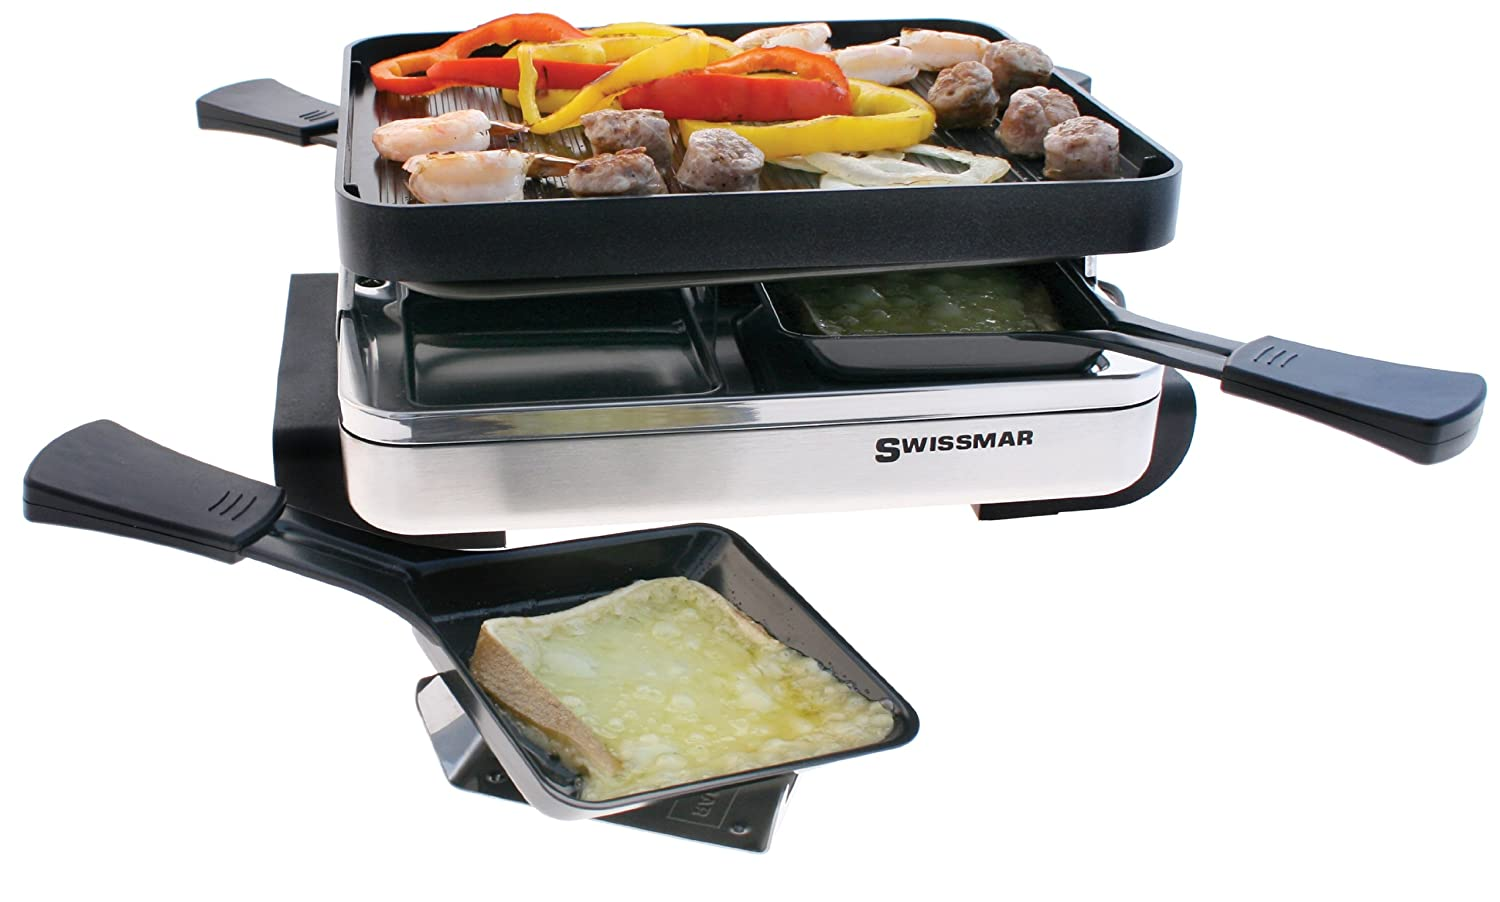 Swissmar KF-77480 4 Person Raclette with Reversible Grill/Griddle Plate, Black